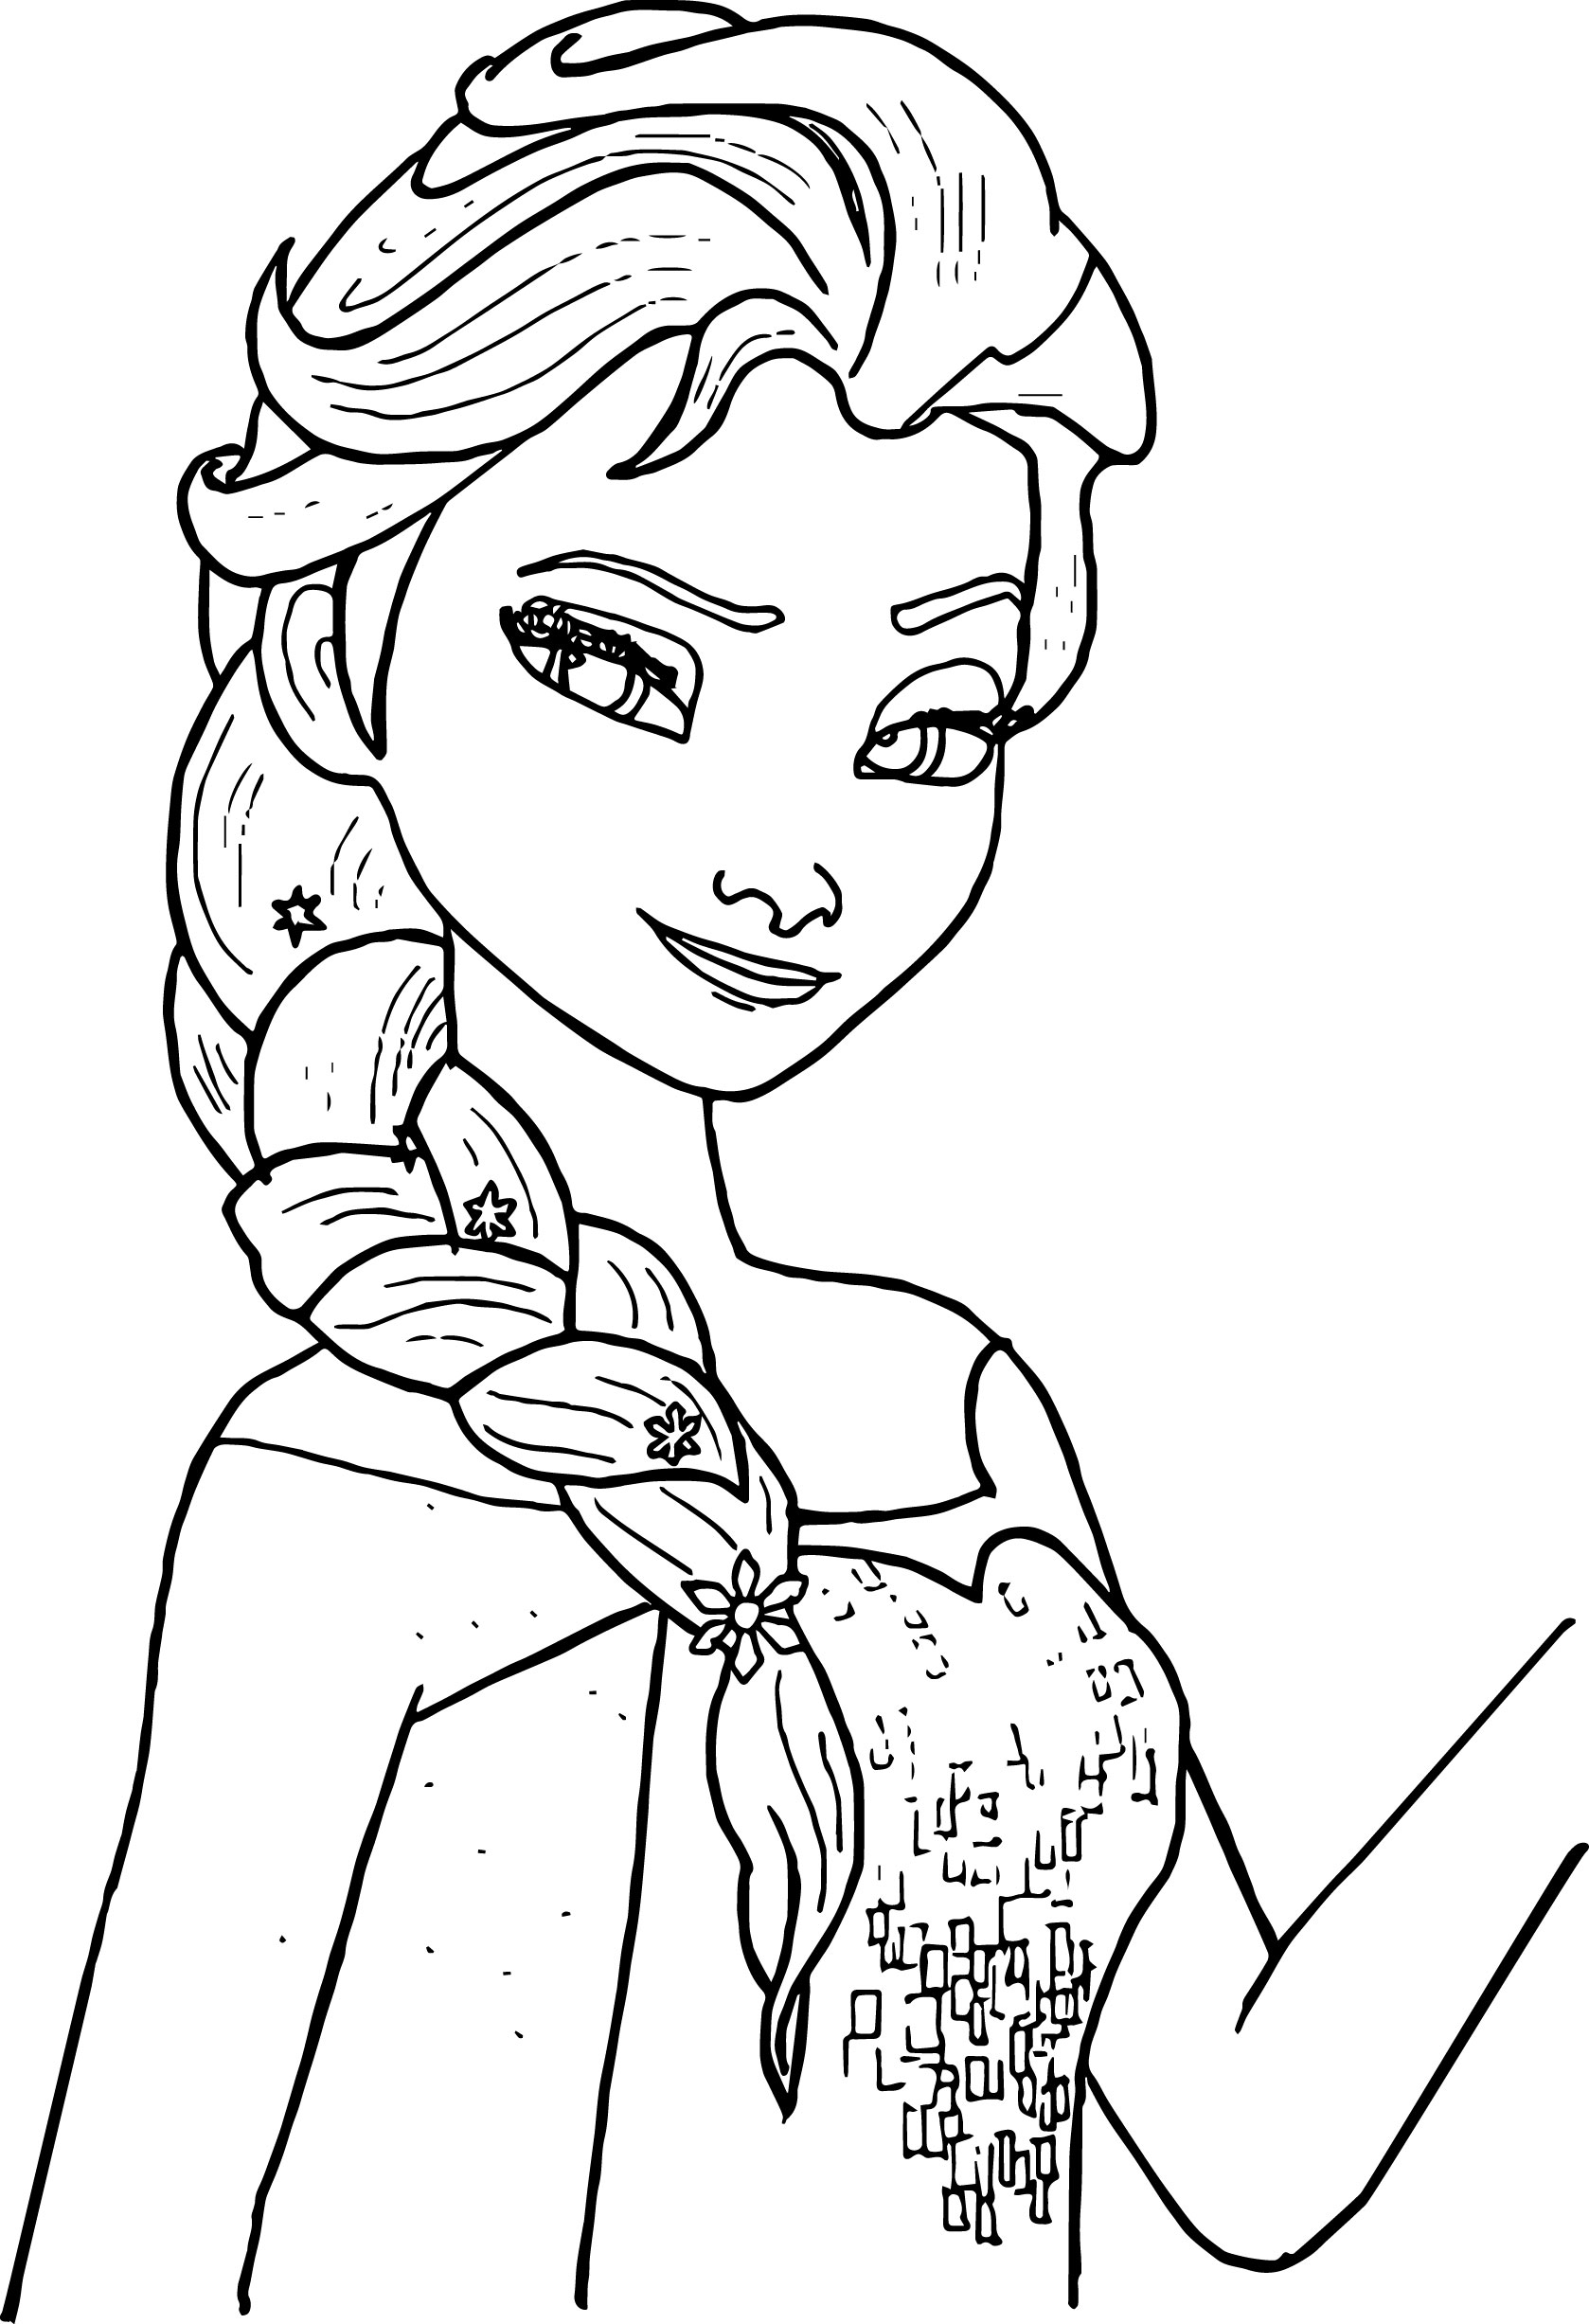 a coloring pages - photo#46